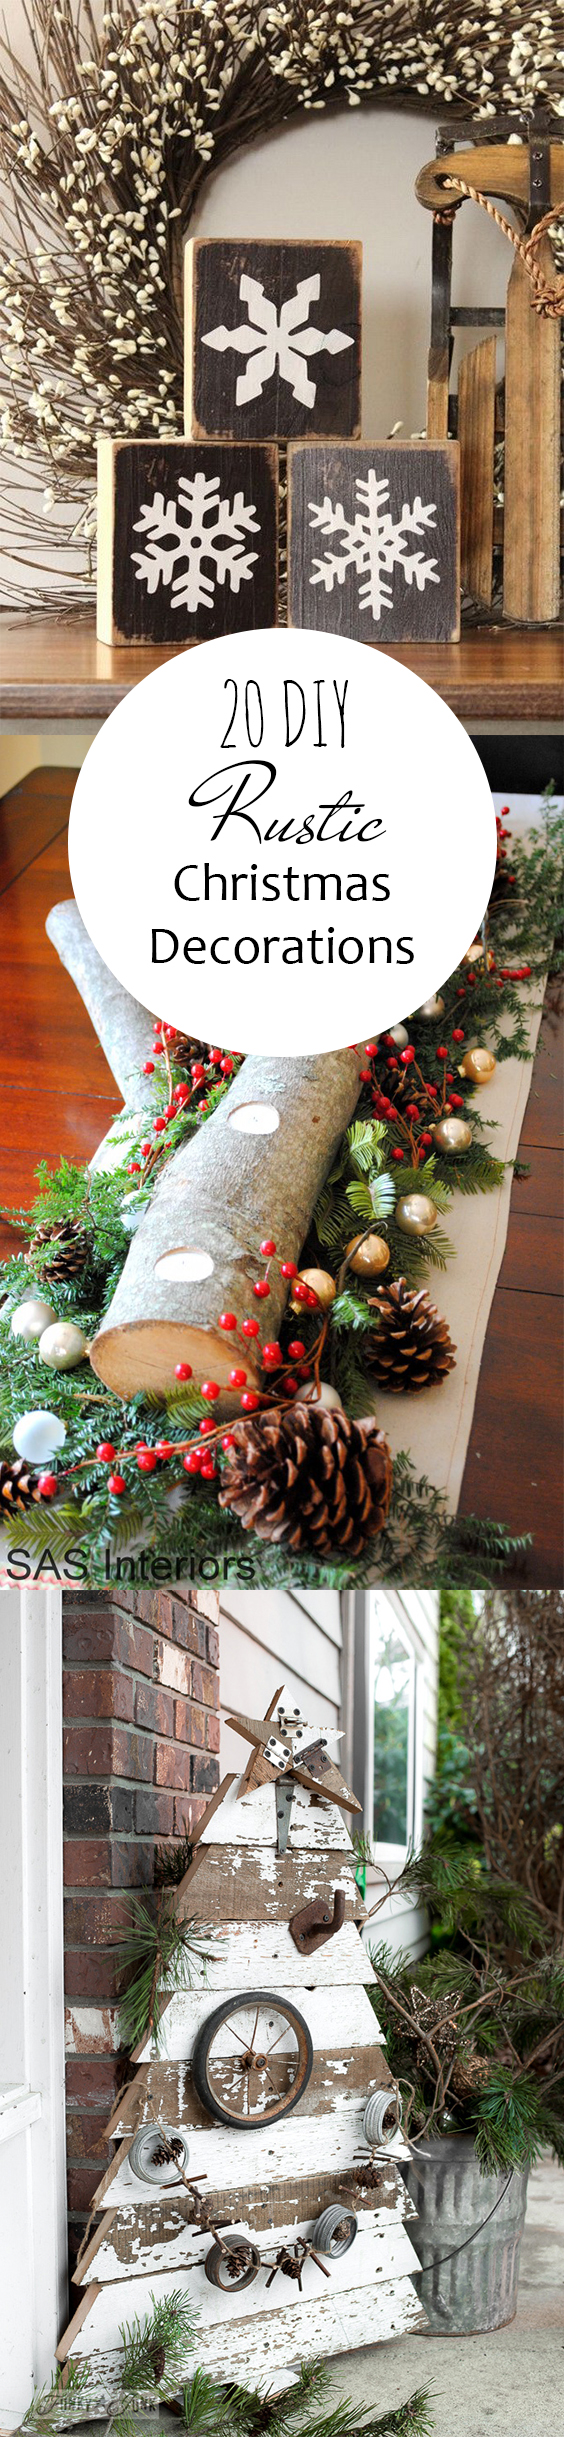 20 Diy Rustic Christmas Decorations Pickled Barrel